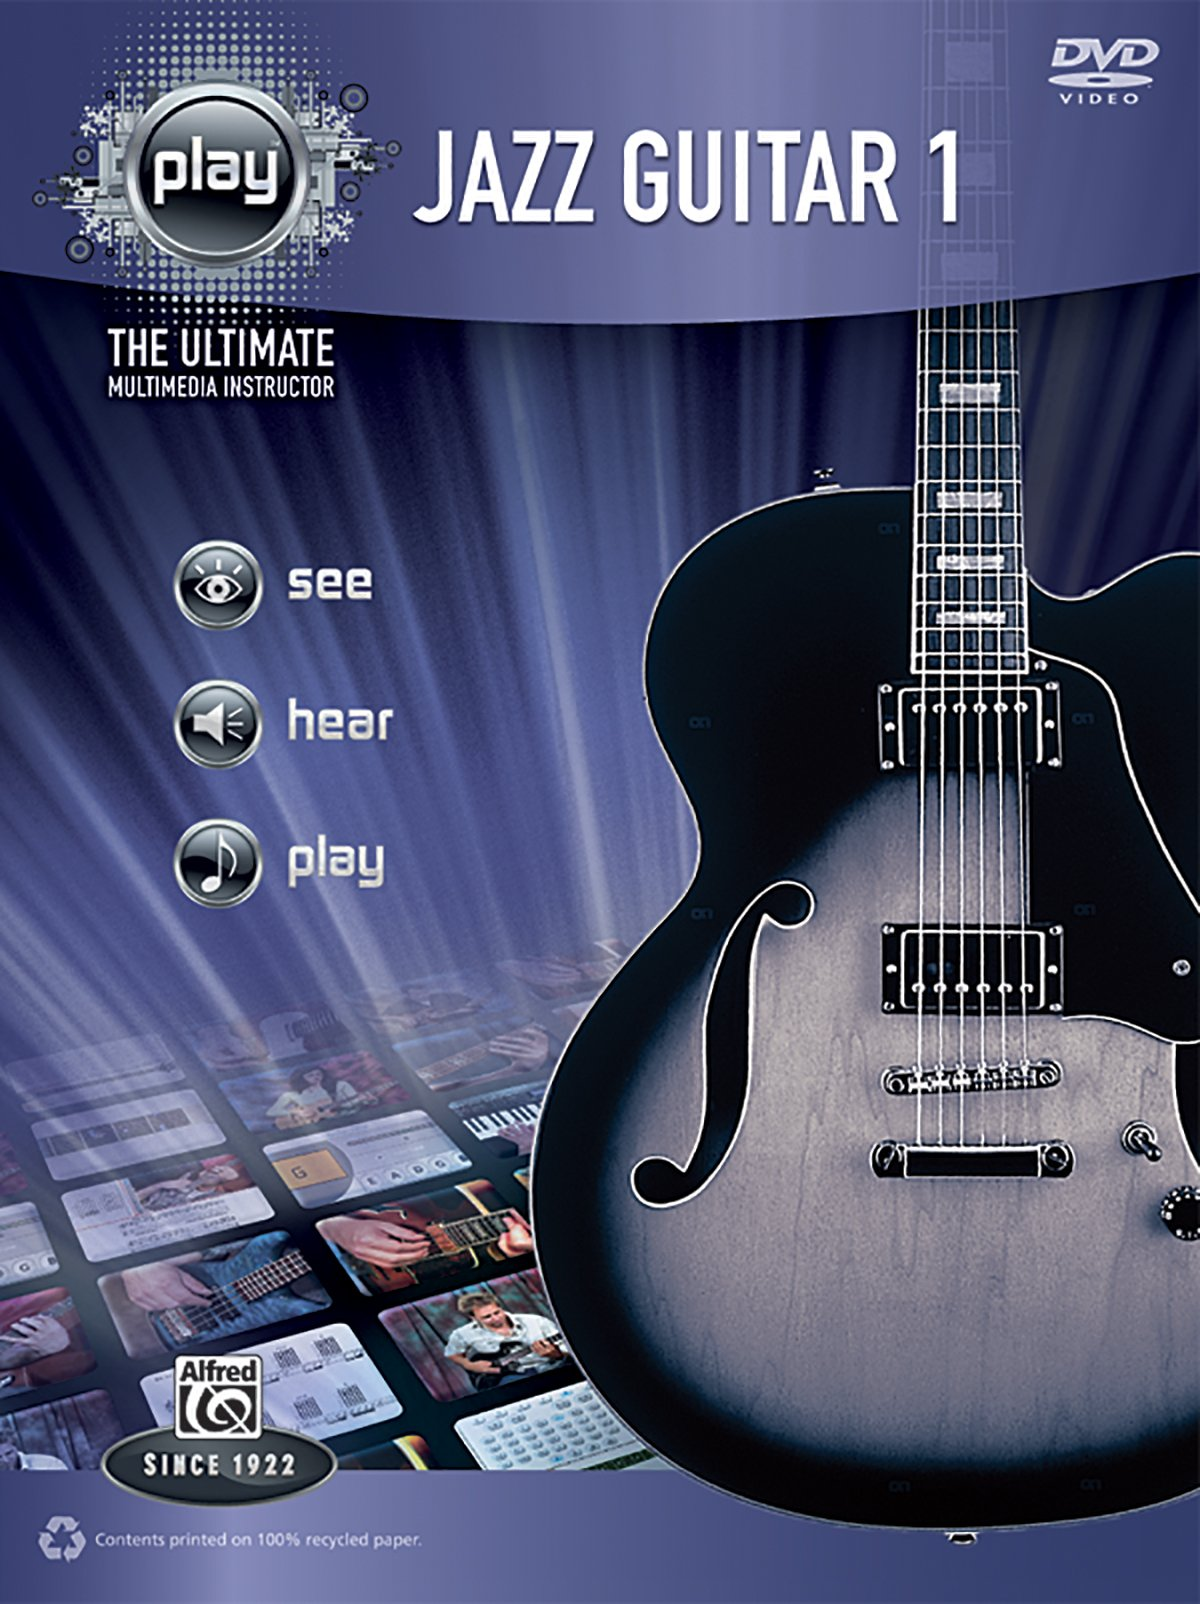 Download Alfred's PLAY Jazz Guitar 1: The Ultimate Multimedia Instructor (Book & DVD) (Alfred's Play Series) ebook